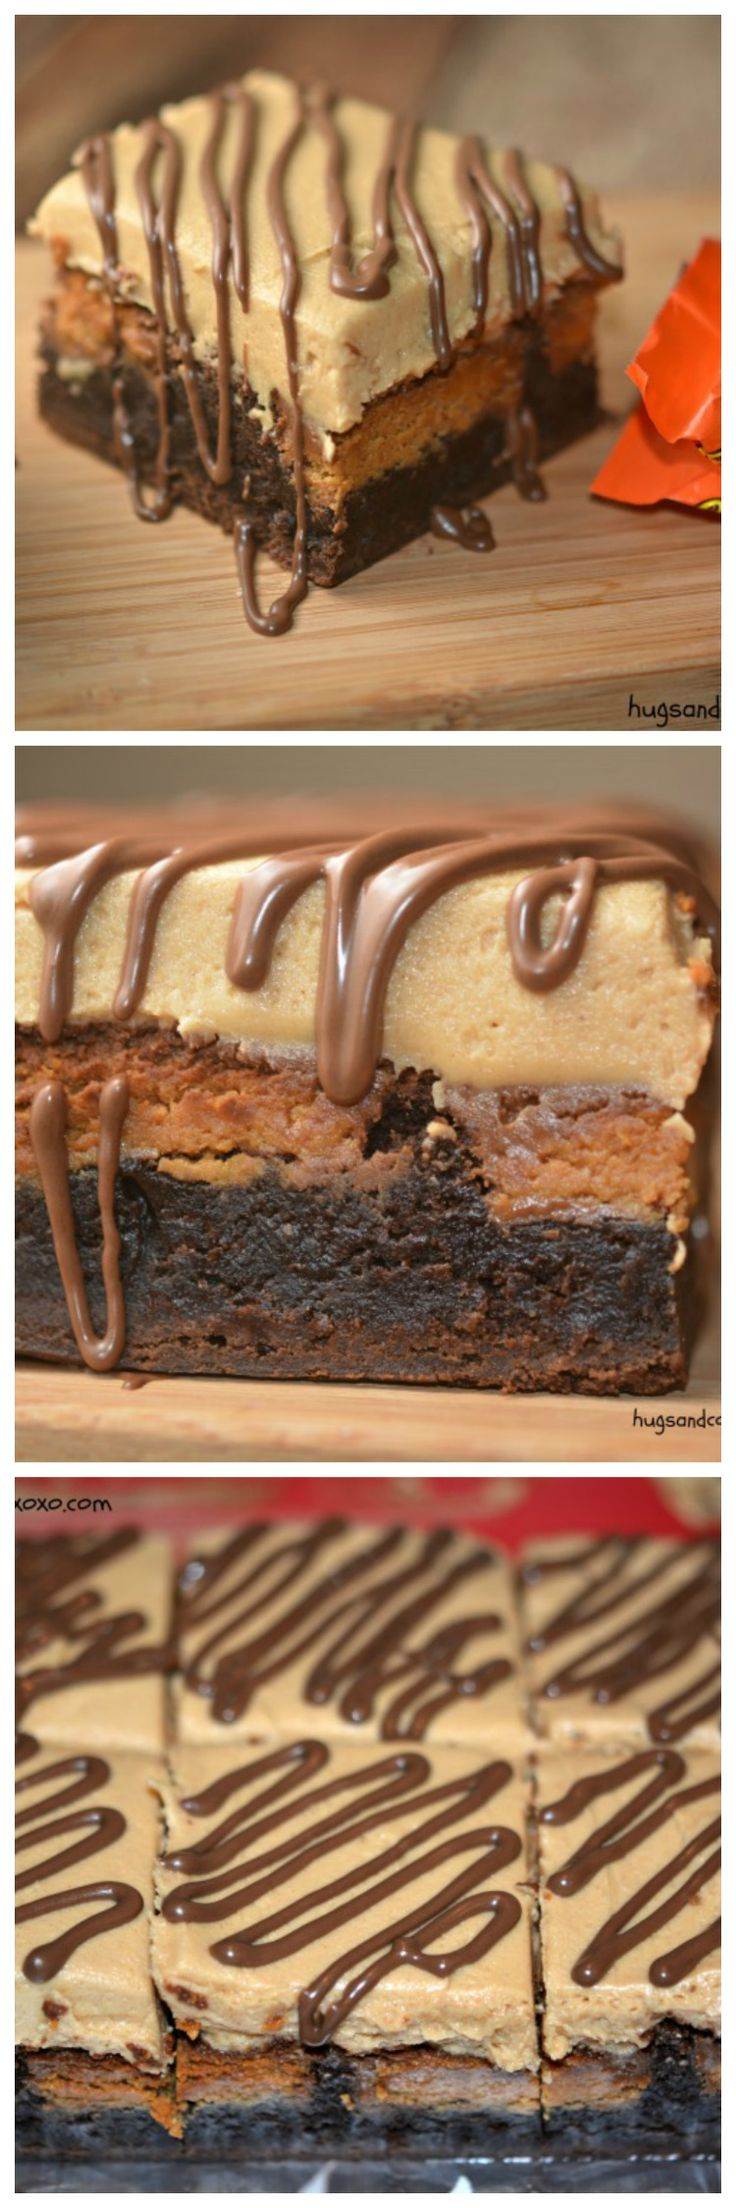 reeses stuffed brownies w/ peanut butter frosting